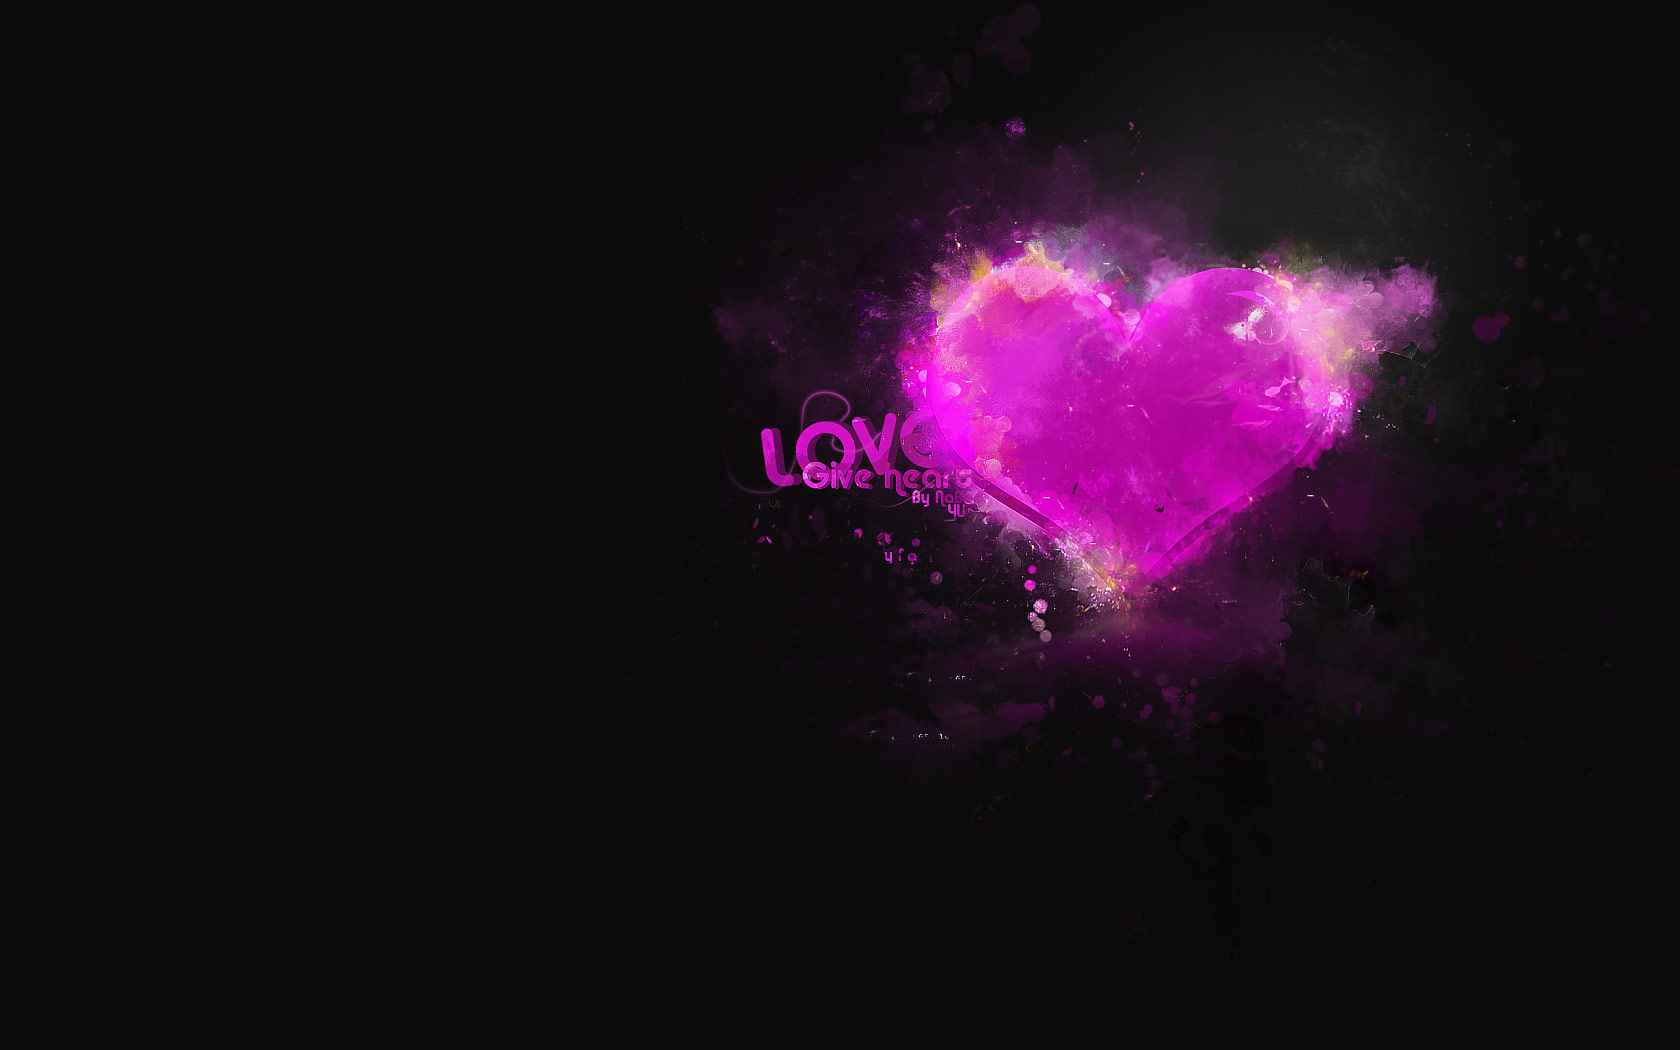 Hd Wallpaper Pictures Of Abstract Hearts Wallpaper